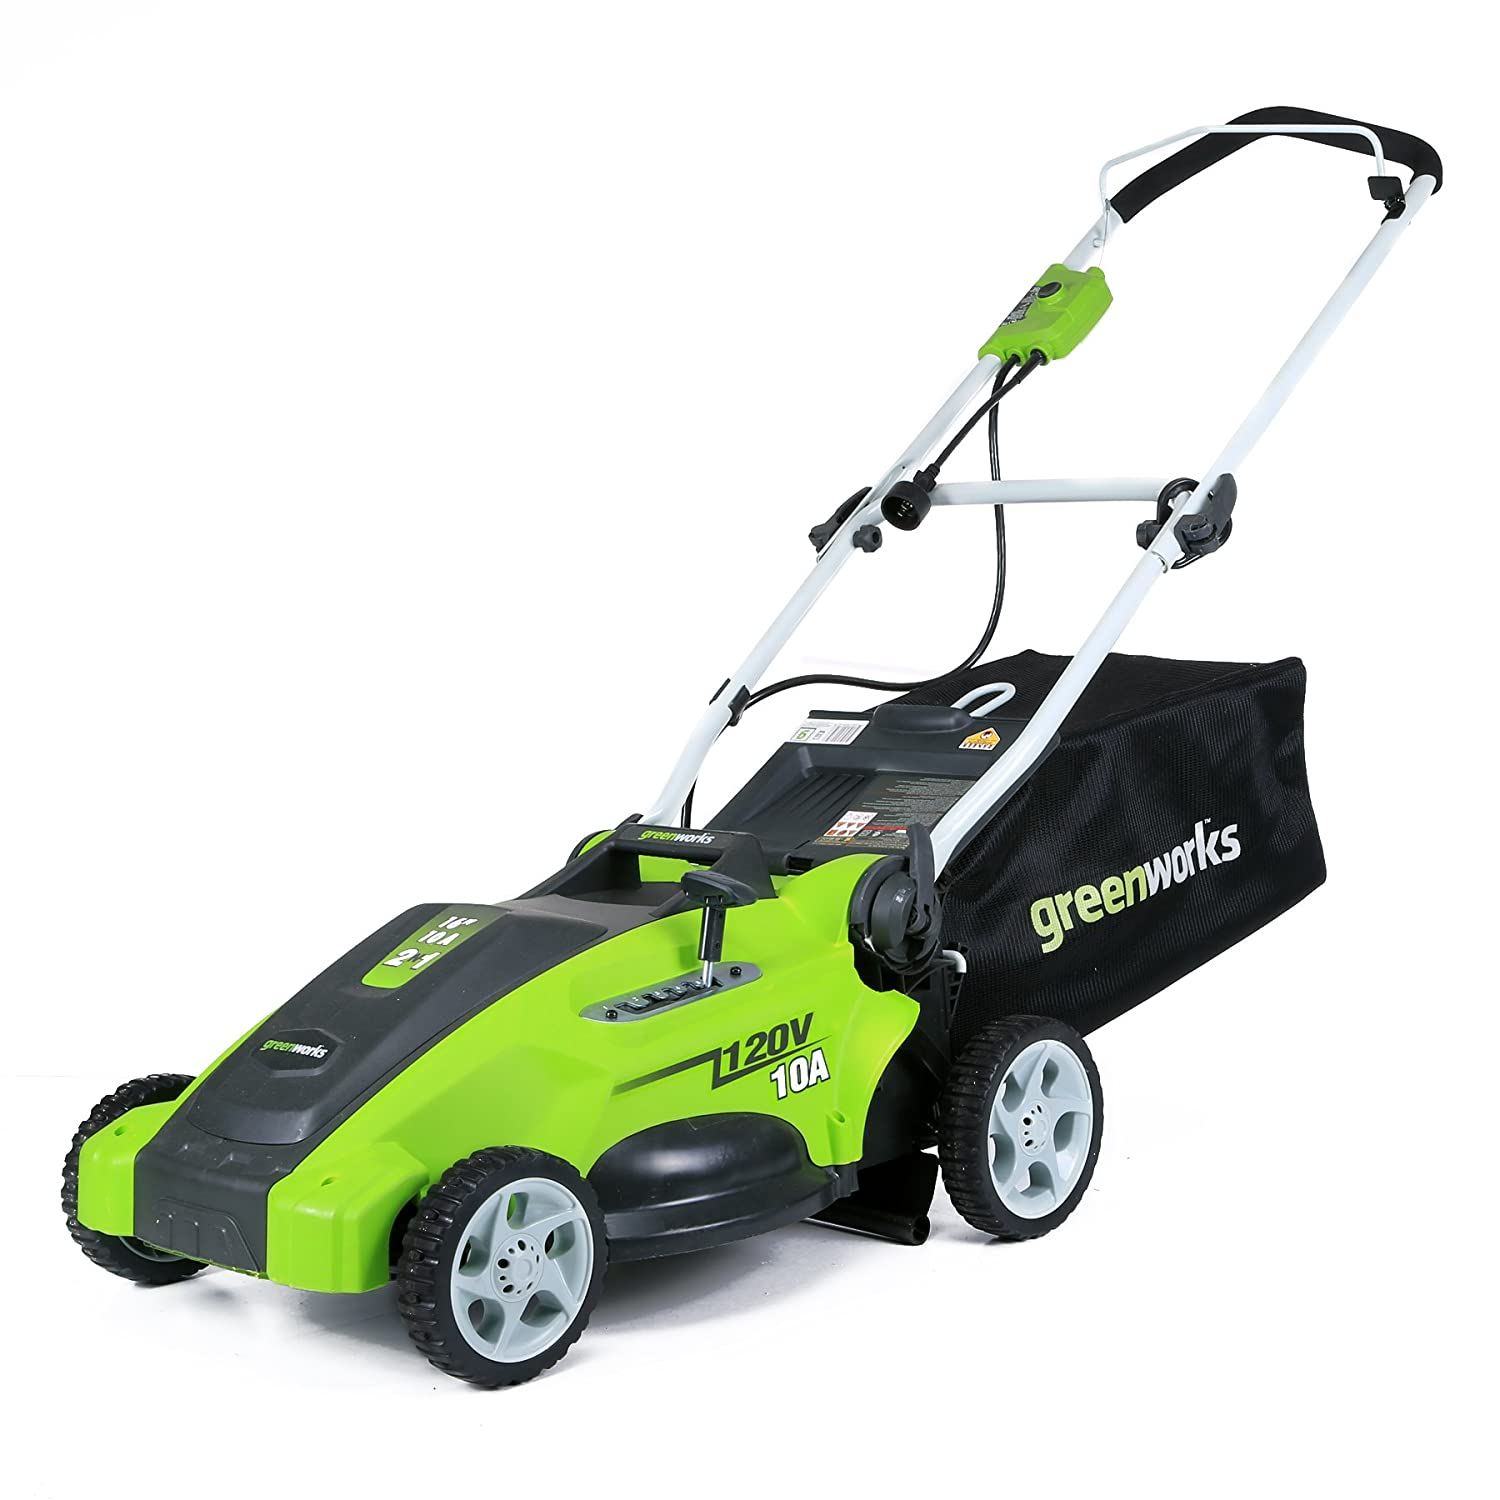 Introduction design amp styling interior performance ride amp handling mpg - Amazon Com Greenworks 16 Inch 10 Amp Corded Lawn Mower 25142 Walk Behind Lawn Mowers Garden Outdoor